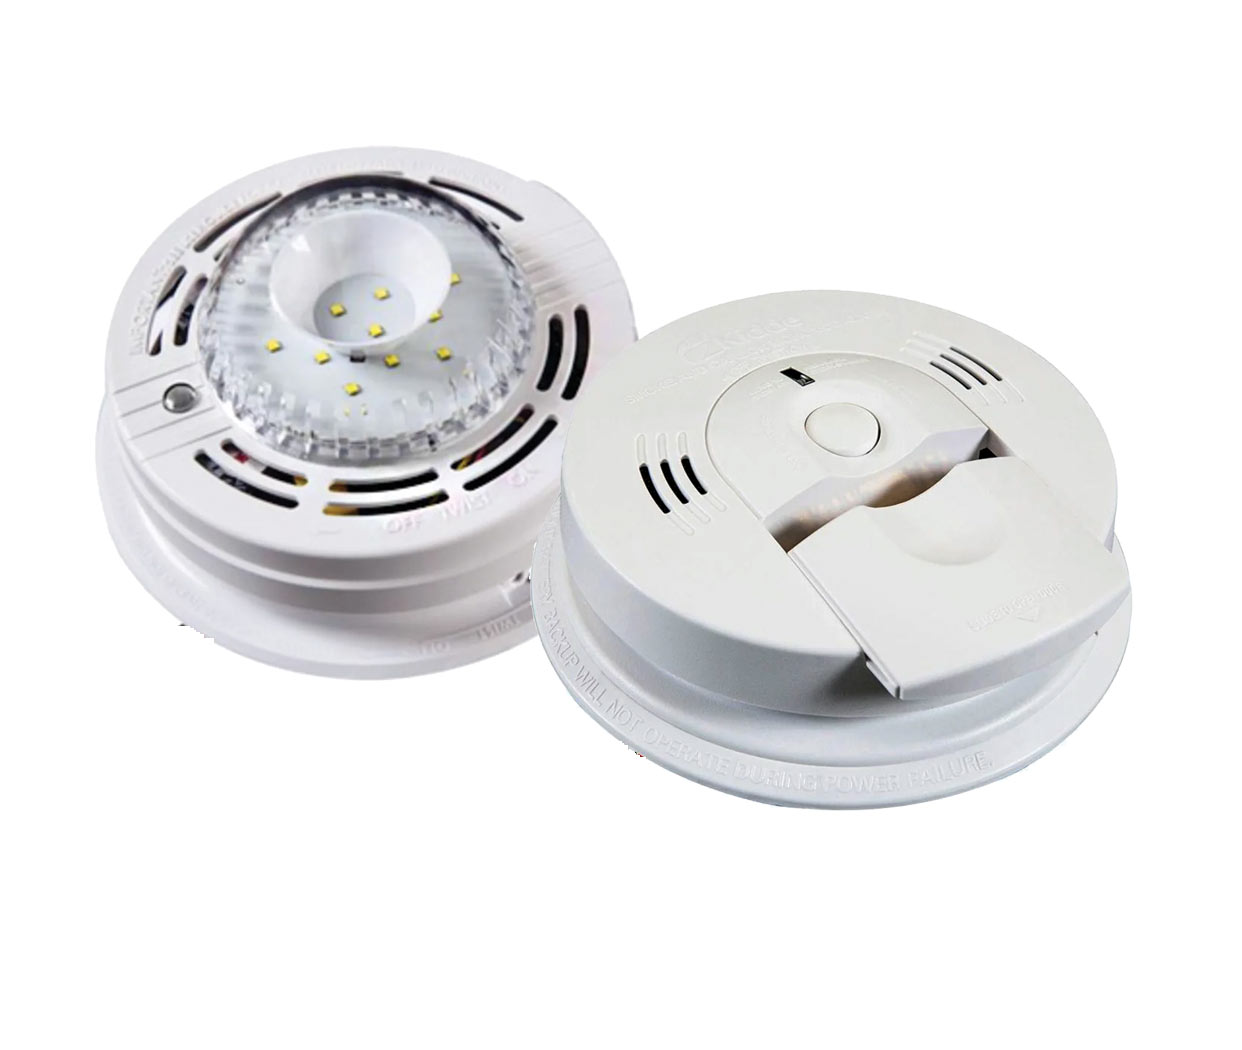 Kidde Combo Carbon Monoxide and Smoke Alarm with Strobe Light - click to view larger image